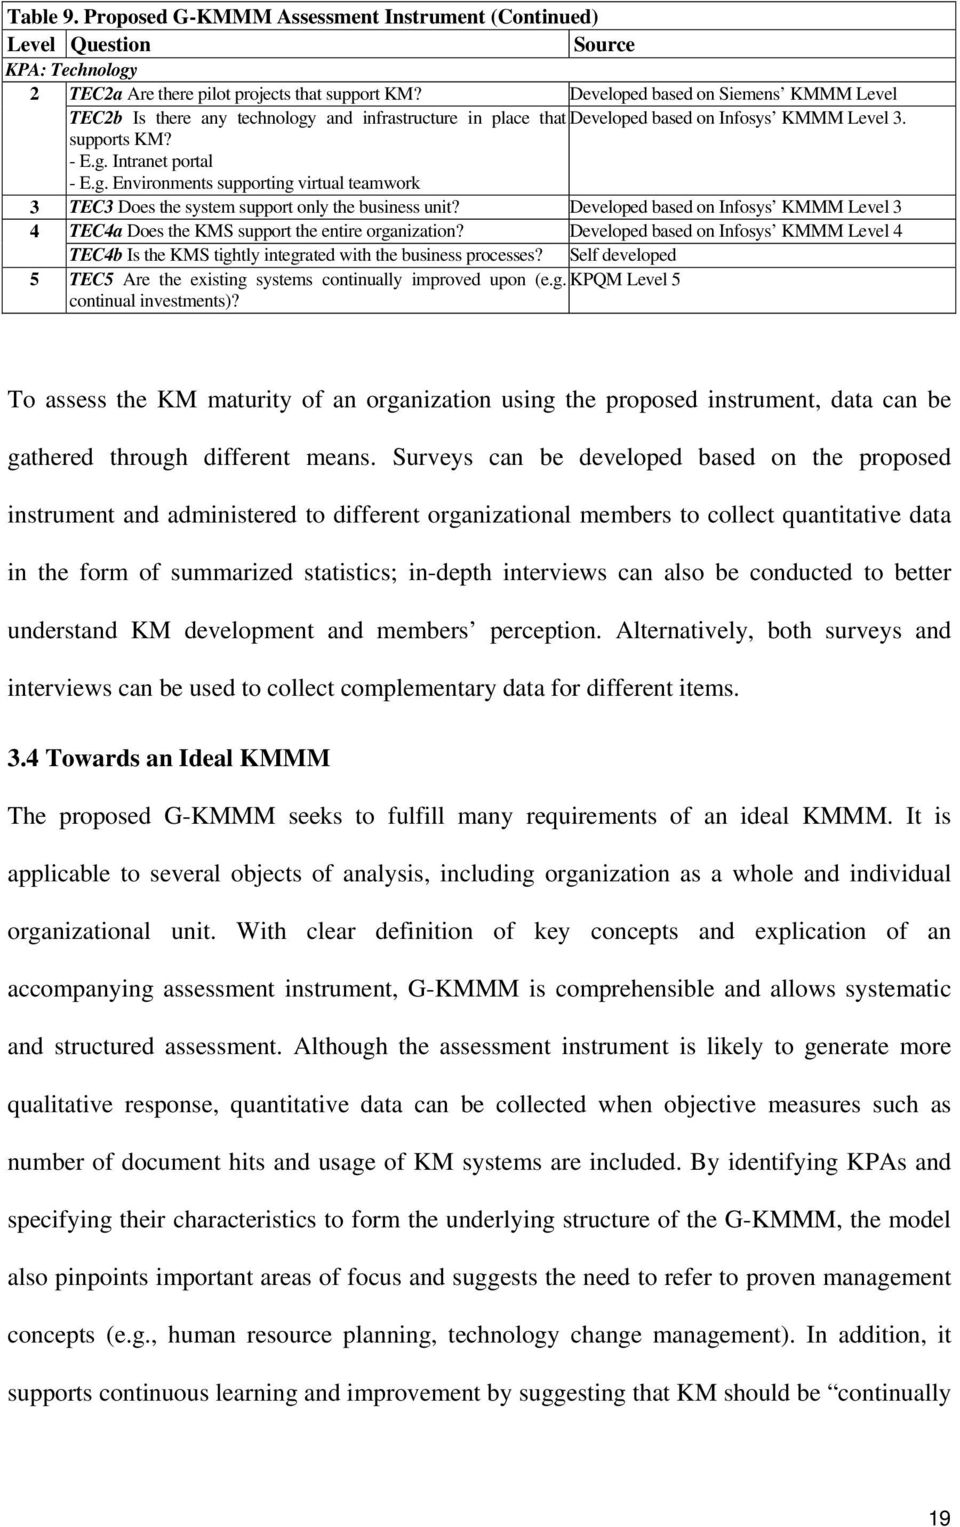 Developed based on Infosys KMMM Level 3 4 TEC4a Does the KMS support the entire organization? Developed based on Infosys KMMM Level 4 TEC4b Is the KMS tightly integrated with the business processes?